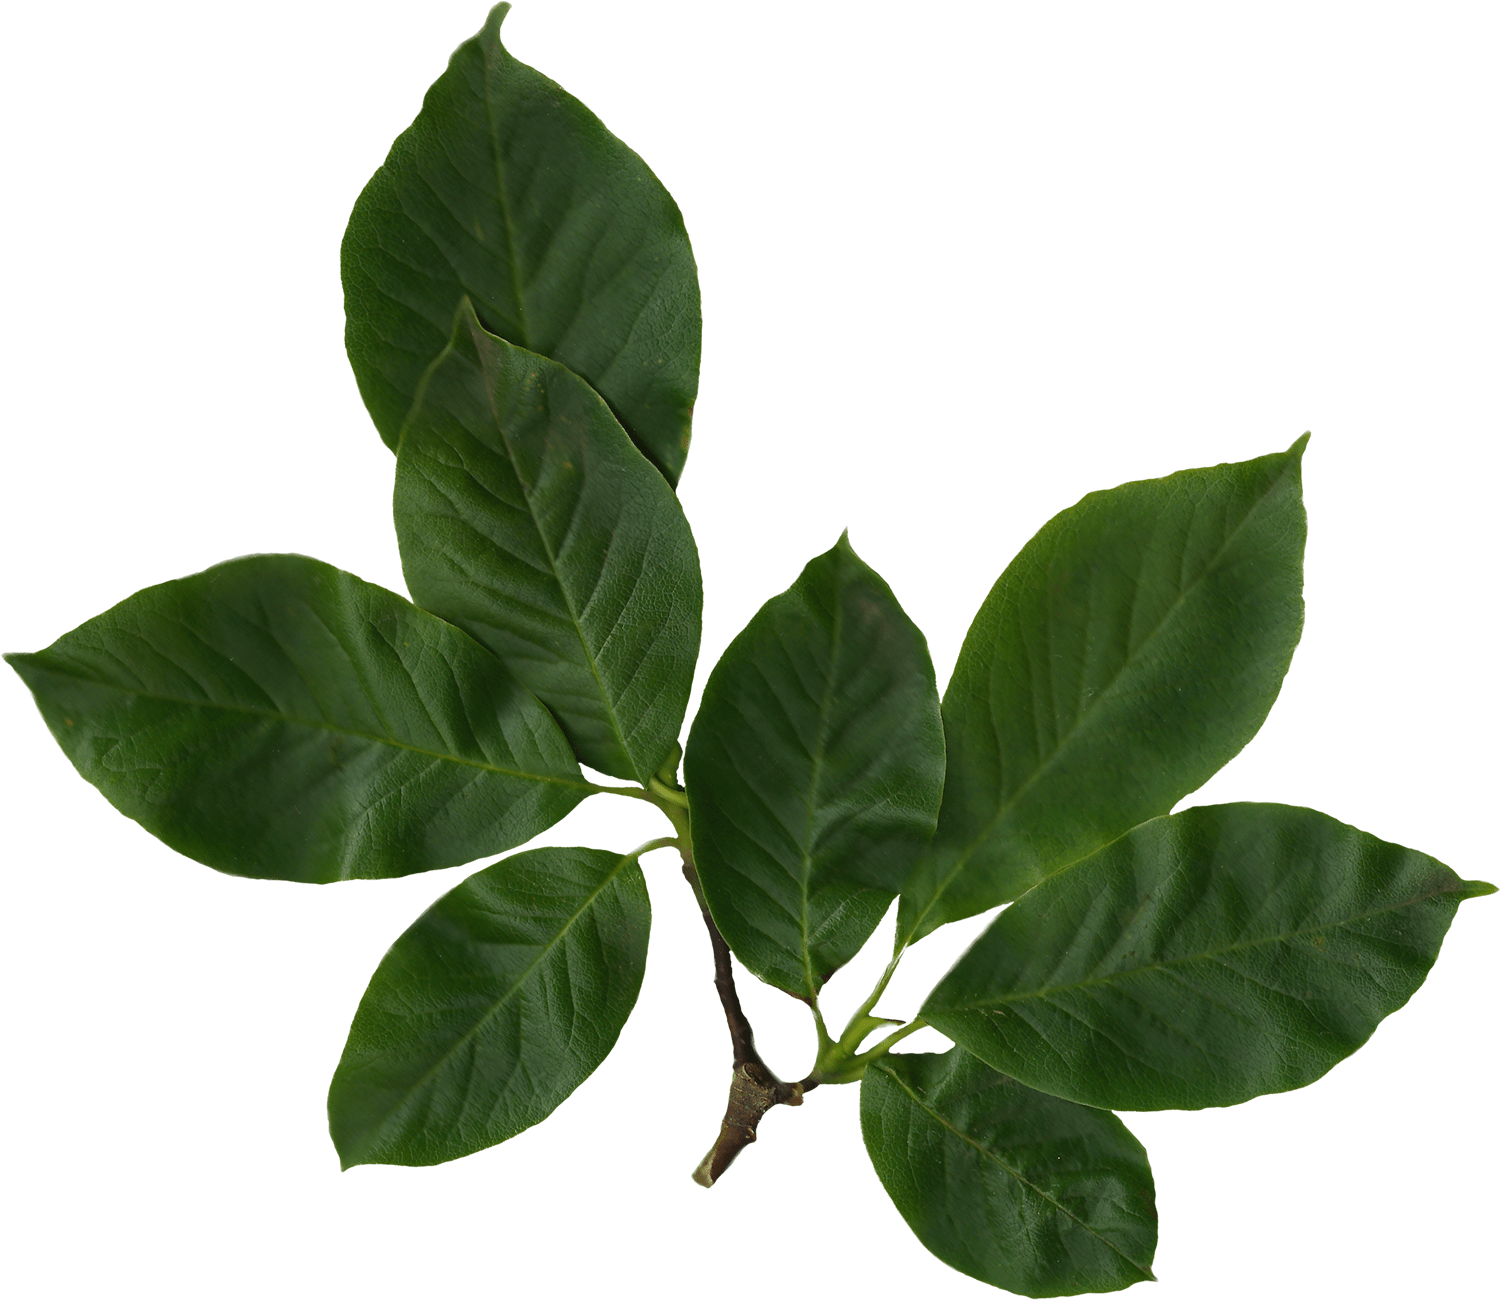 Magnolia clipart magnolia leaf. Leaves photo transparent png